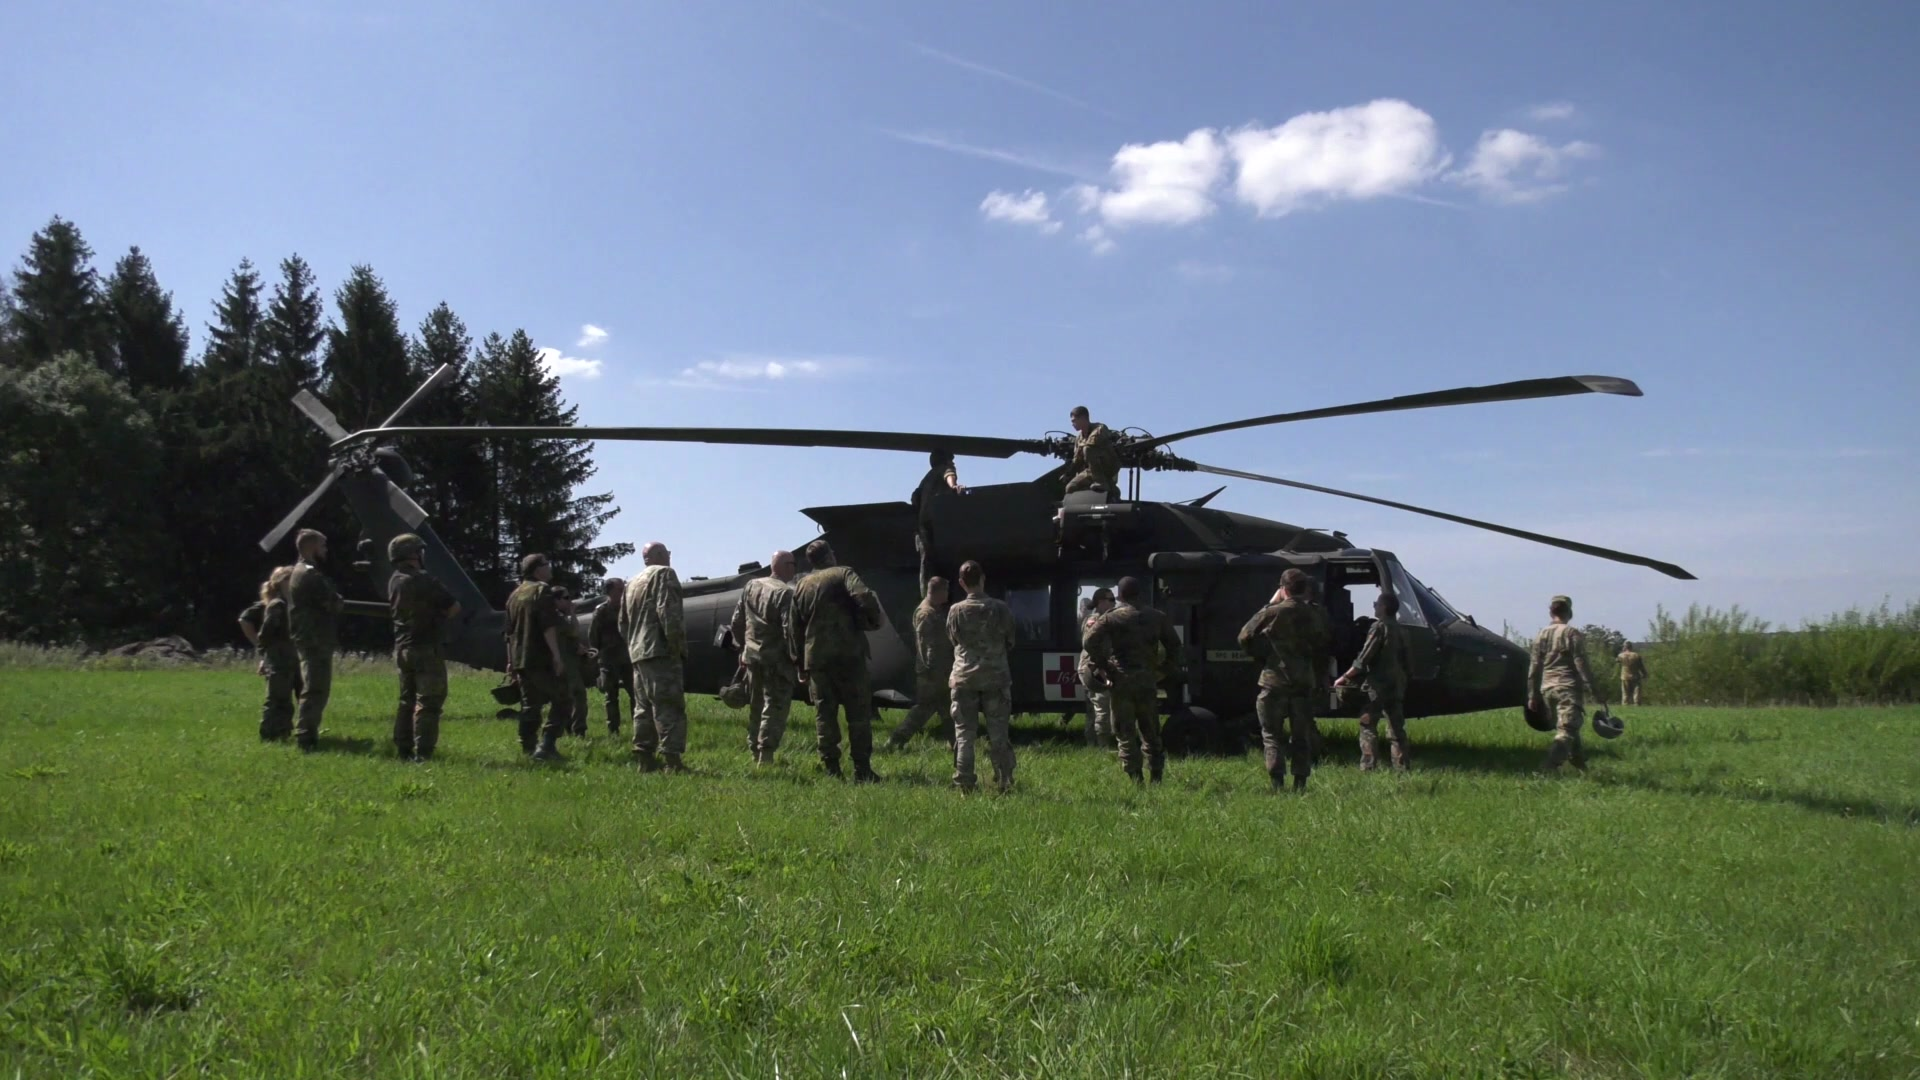 U.S. Army Reserve medical Soldiers from Medical Support Unit-Europe, 7th Mission Support Command, teamed up with German Bundeswehr Army Reserve medical Soldiers for partnership training that included medical treatment scenarios in a mobile hospital and litter aid training loading and unloading a UH-60 Blackhawk helicopter.